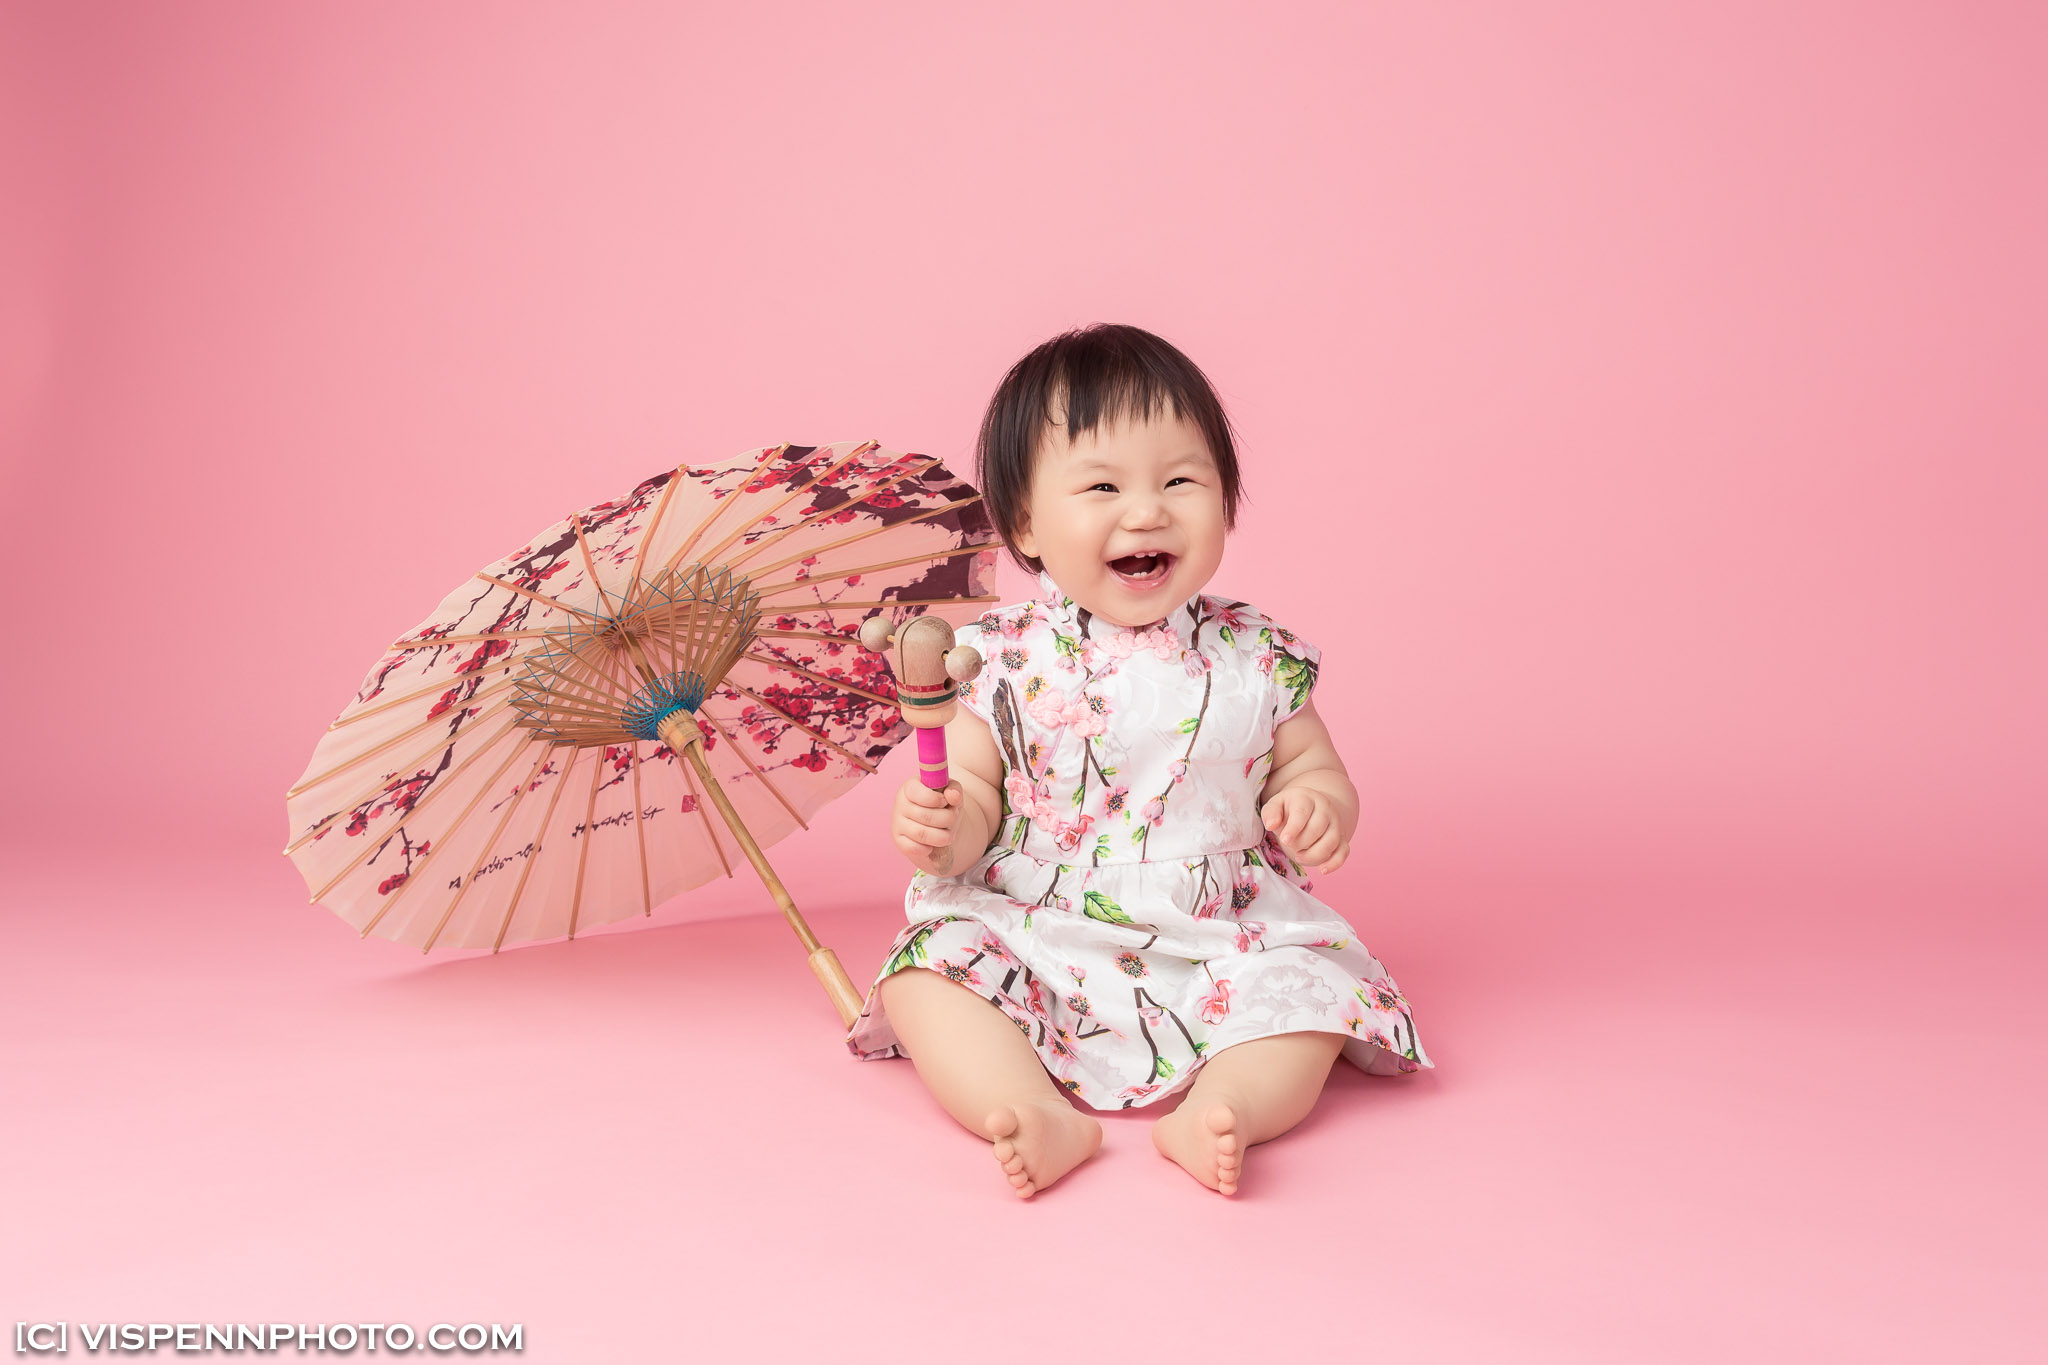 Melbourne Newborn Baby Family Photo BaoBao VISPENN 墨尔本 儿童 宝宝 百天照 满月照 孕妇照 全家福 KIDS VISPENN AmyLiuYi 2041